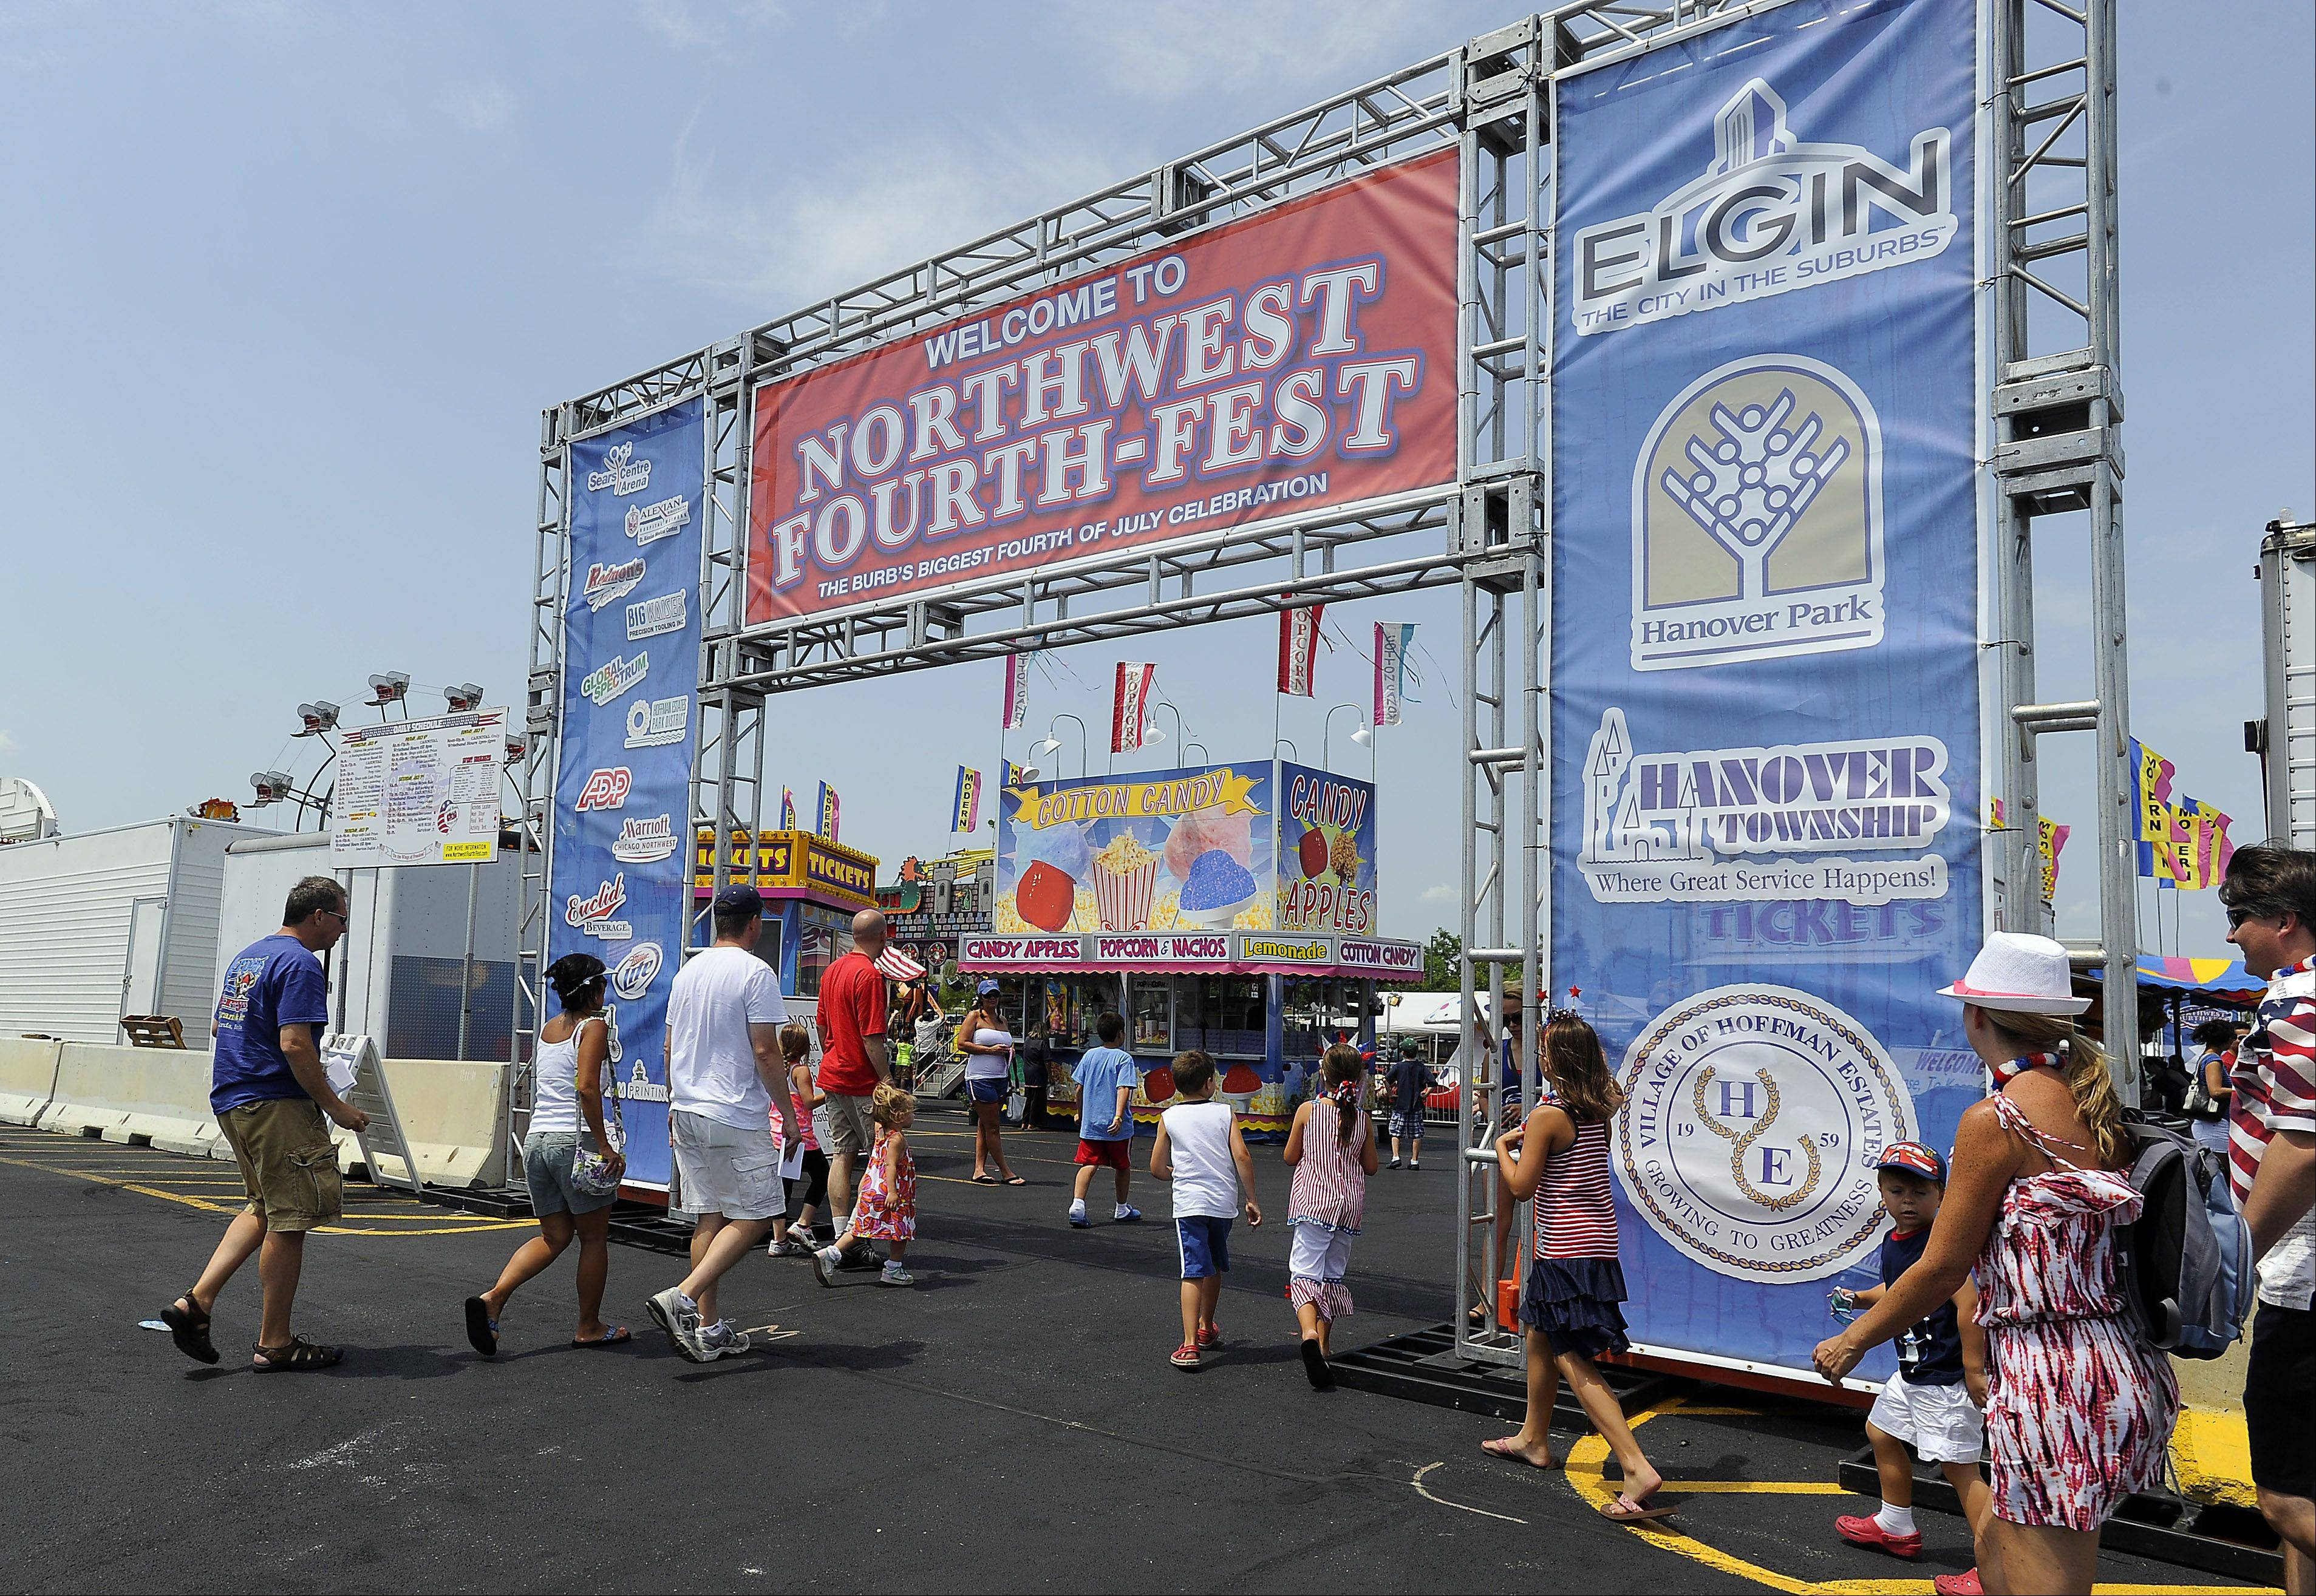 Although Northwest Fourth Fest lost about $128,000 this year, village officials say they are working on improvements for next year and believe it will start breaking even in a few years.